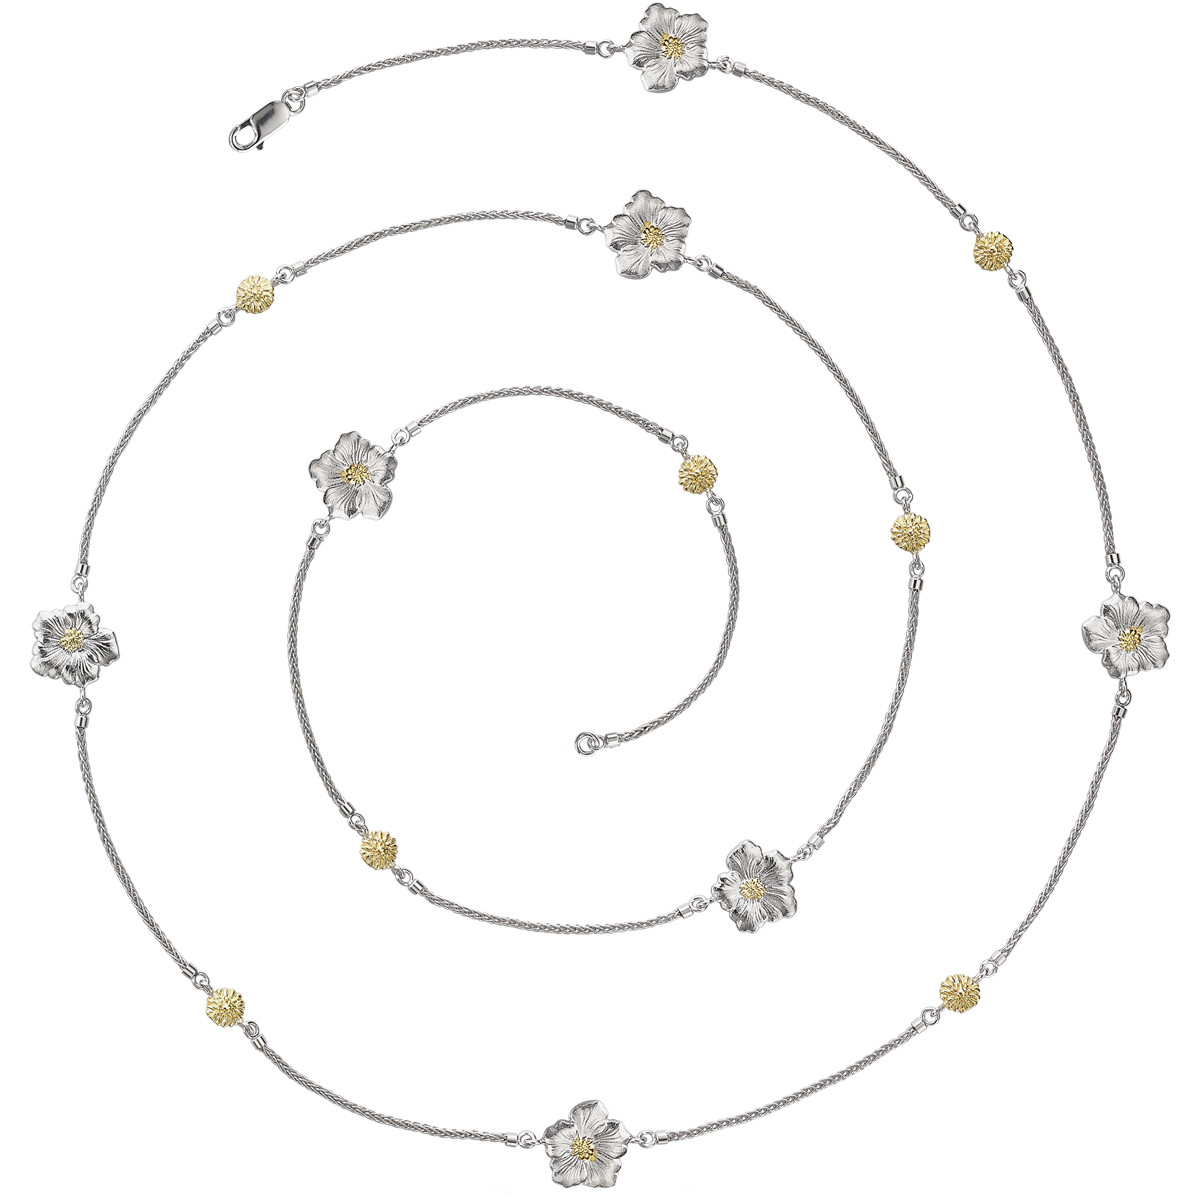 Silver & Vermeil Gardenia Long Necklace